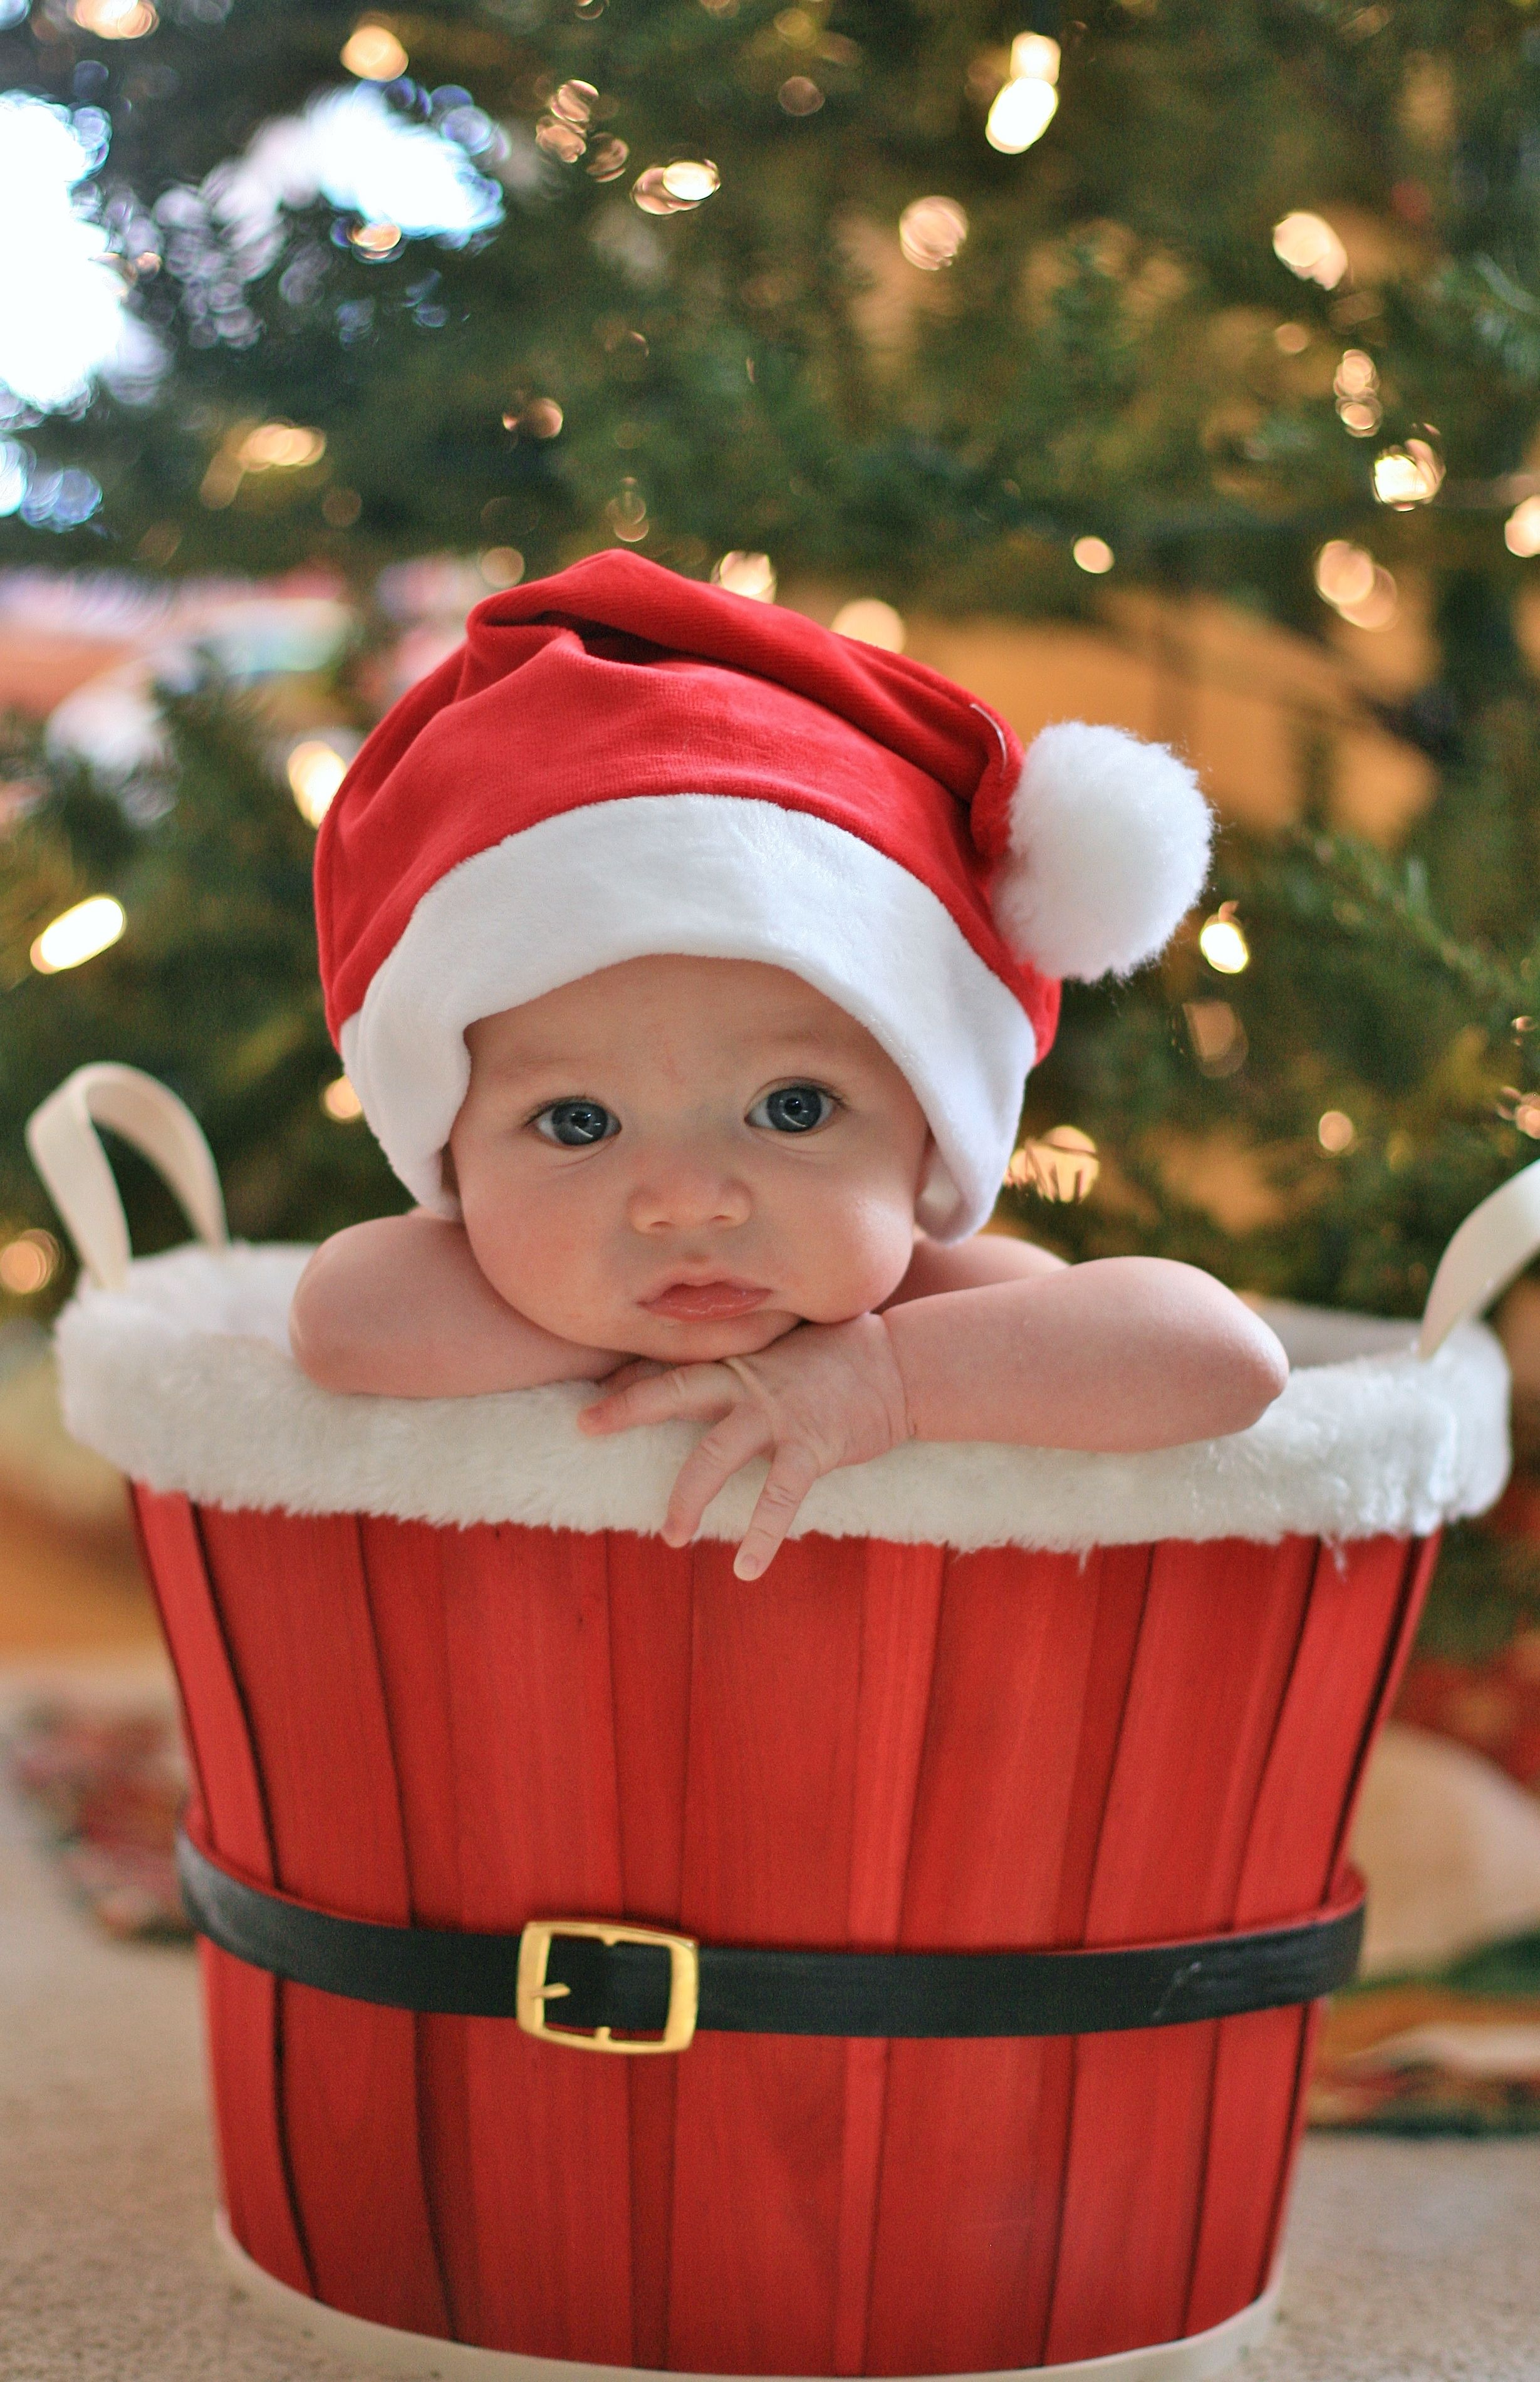 e979d5dcc27 20 Ideas for Christmas Pictures with Babies - Baby s First Christmas ...